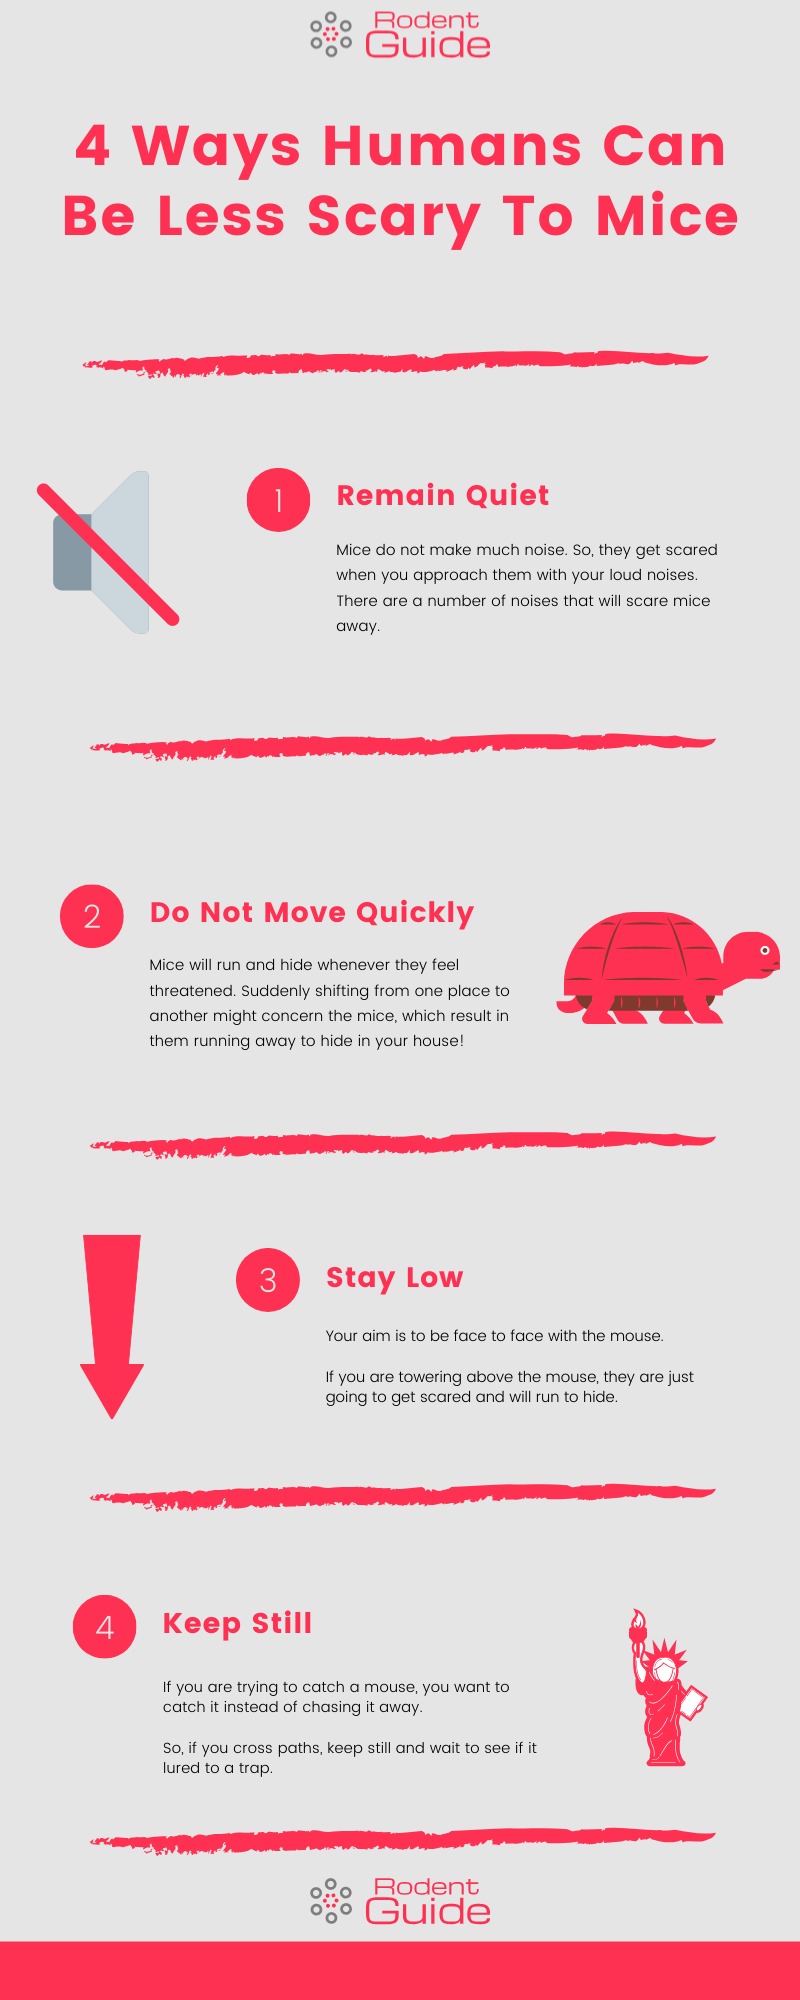 4 Ways Humans Can Be Less Scary To Mice Infographic